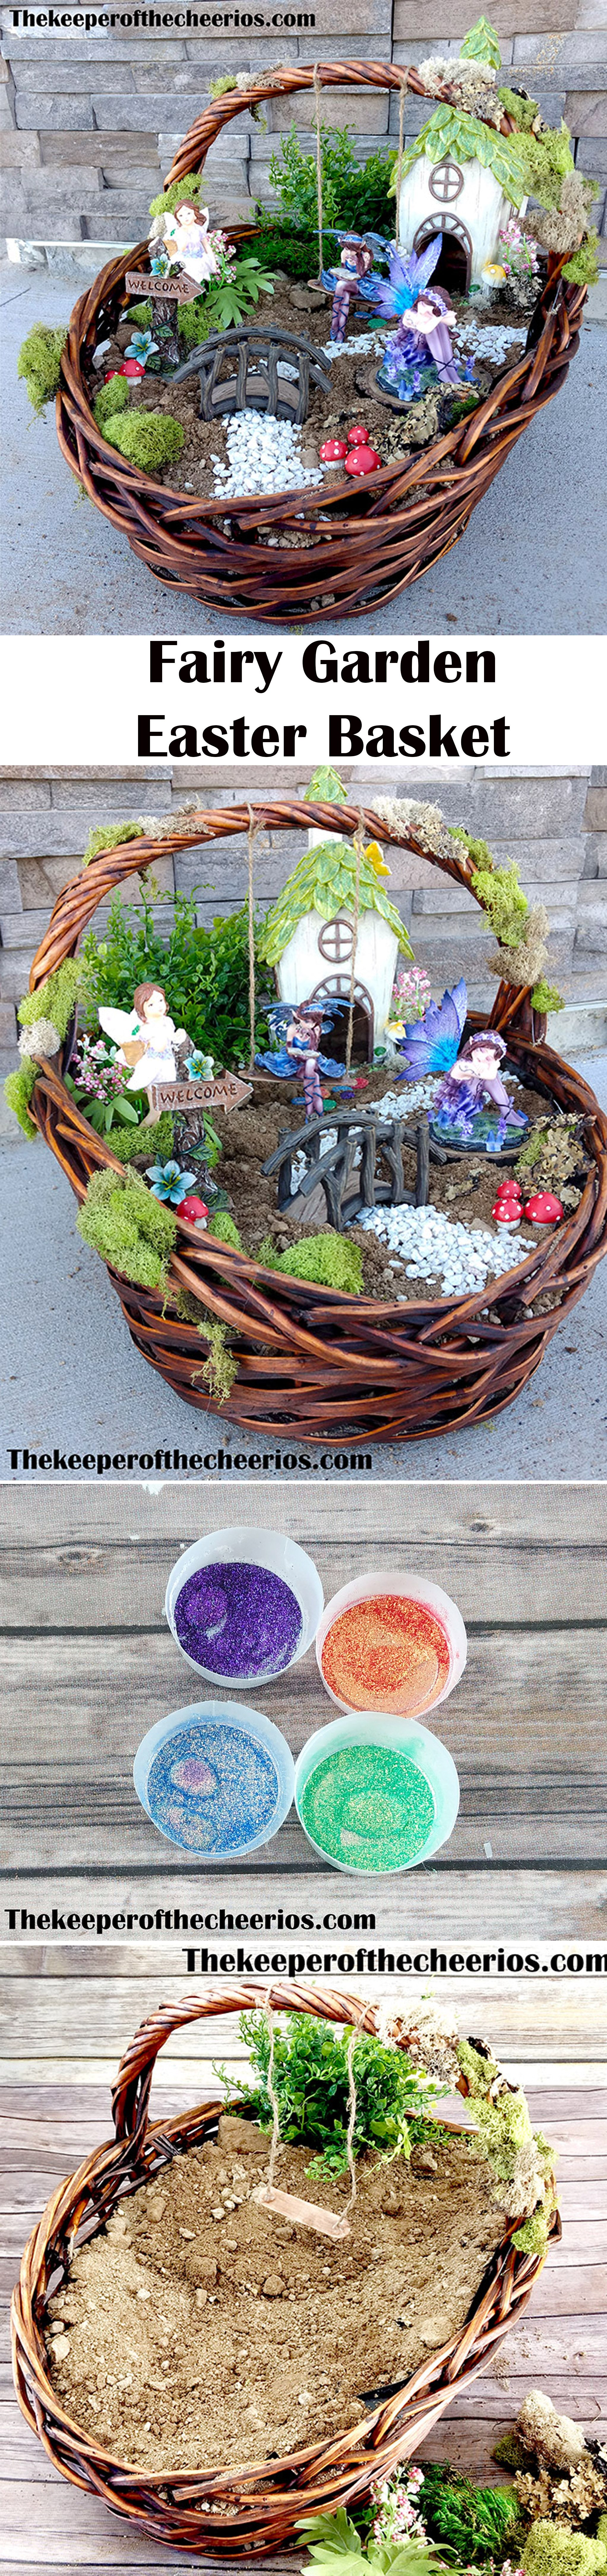 Easter basket fairy garden tired of the same old easter baskets easter basket fairy garden tired of the same old easter baskets this is a fun way to mix up the traditional easter basket into something fun and different negle Choice Image